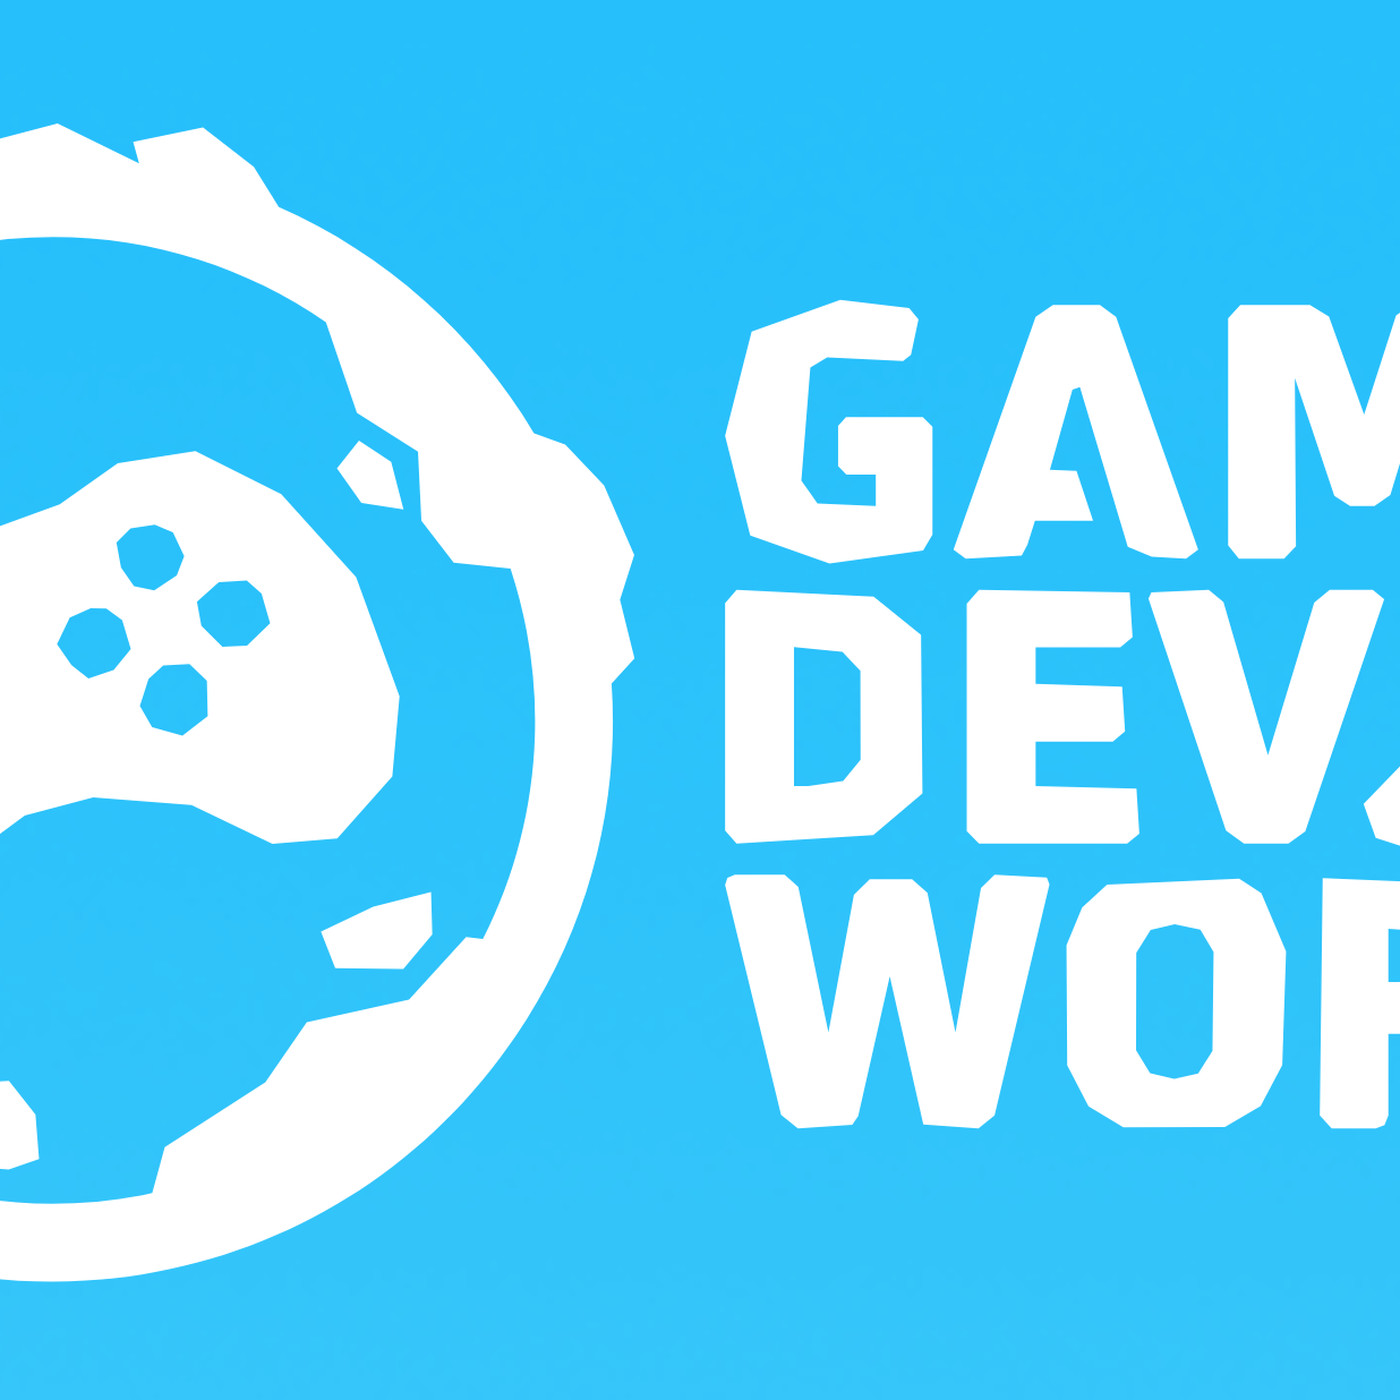 Gamedev world hopes to bring down language barriers - Polygon